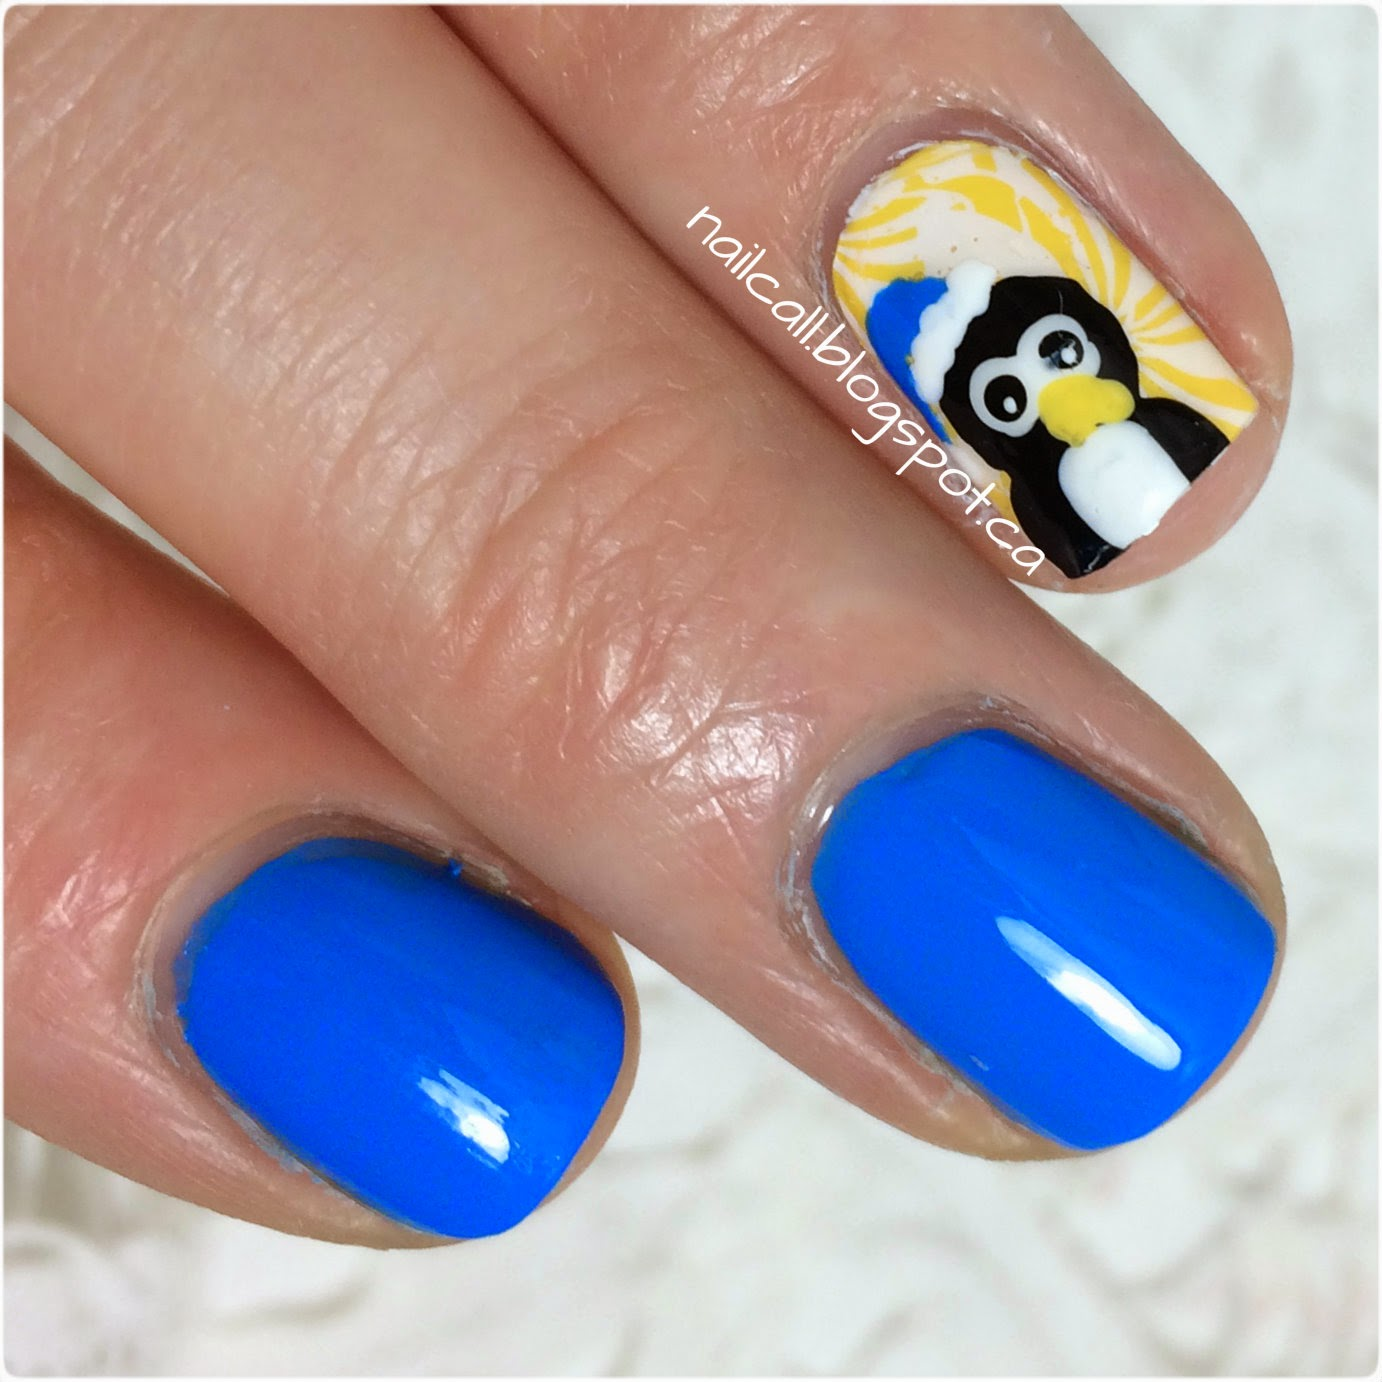 alternate view of blue nail polish with penguin accent nail